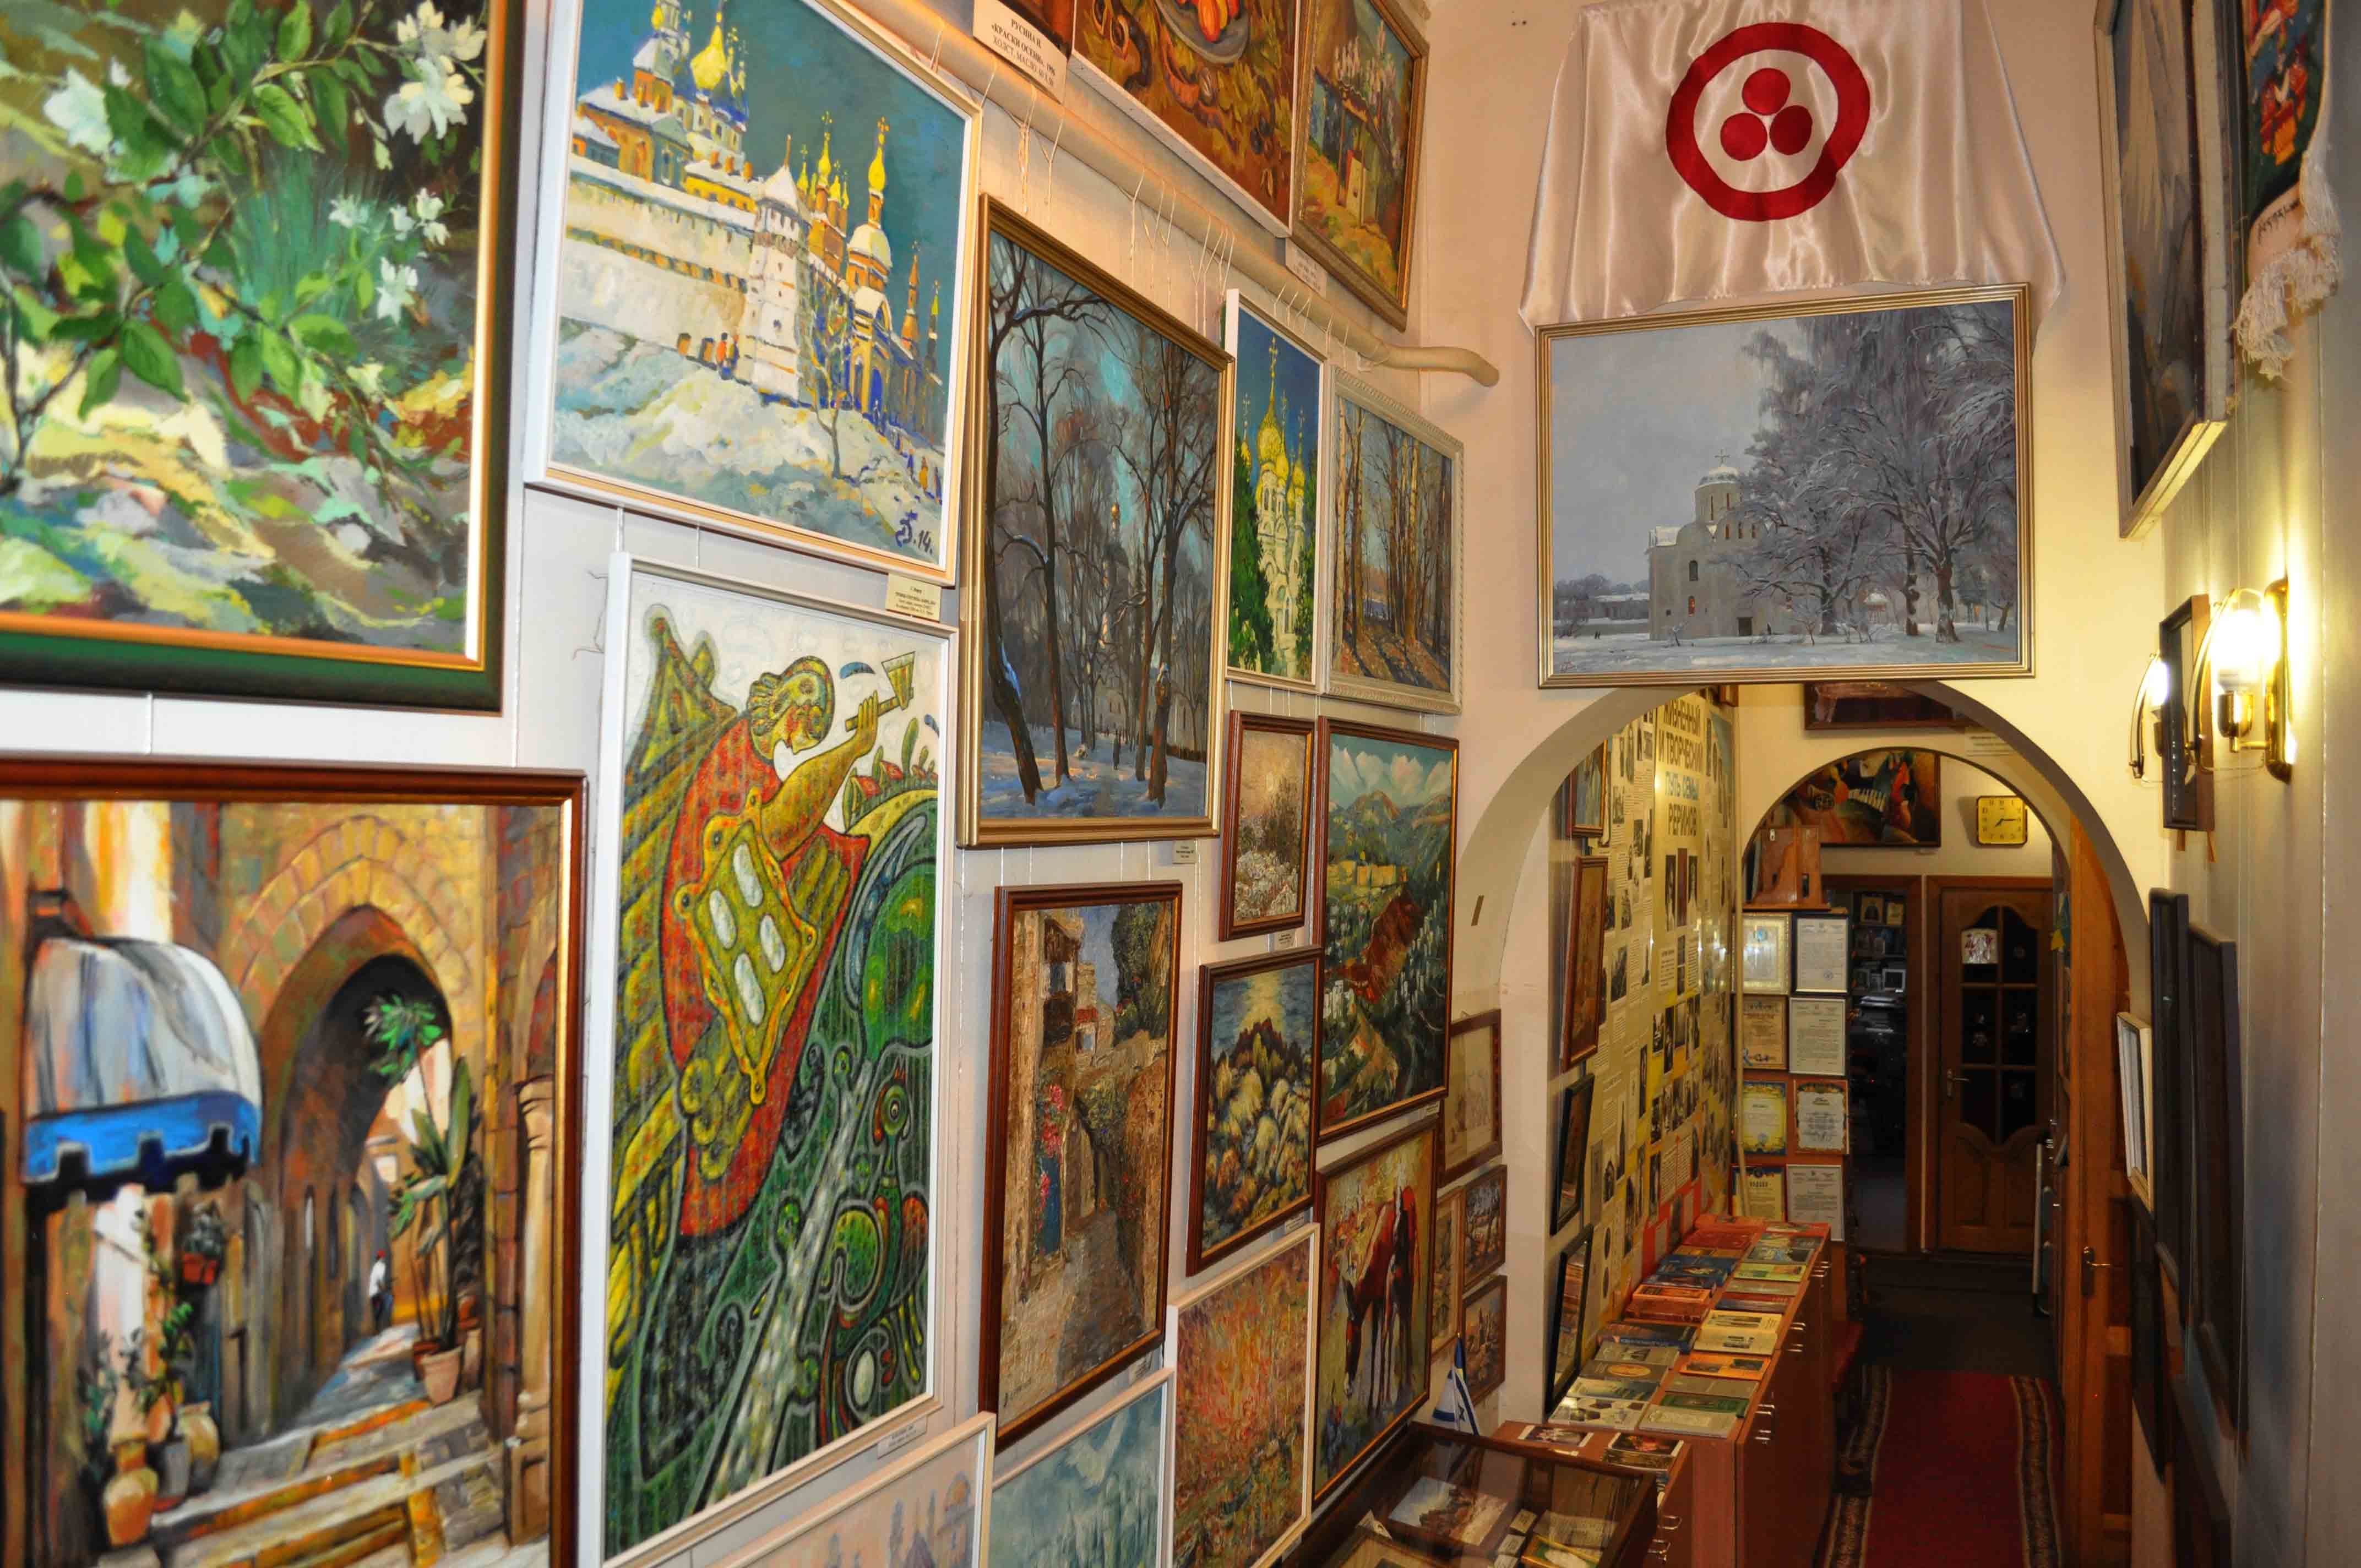 Exposition of contemporary artists of Ukraine, Israel and Odessa in the Odessa Roerich House Museum